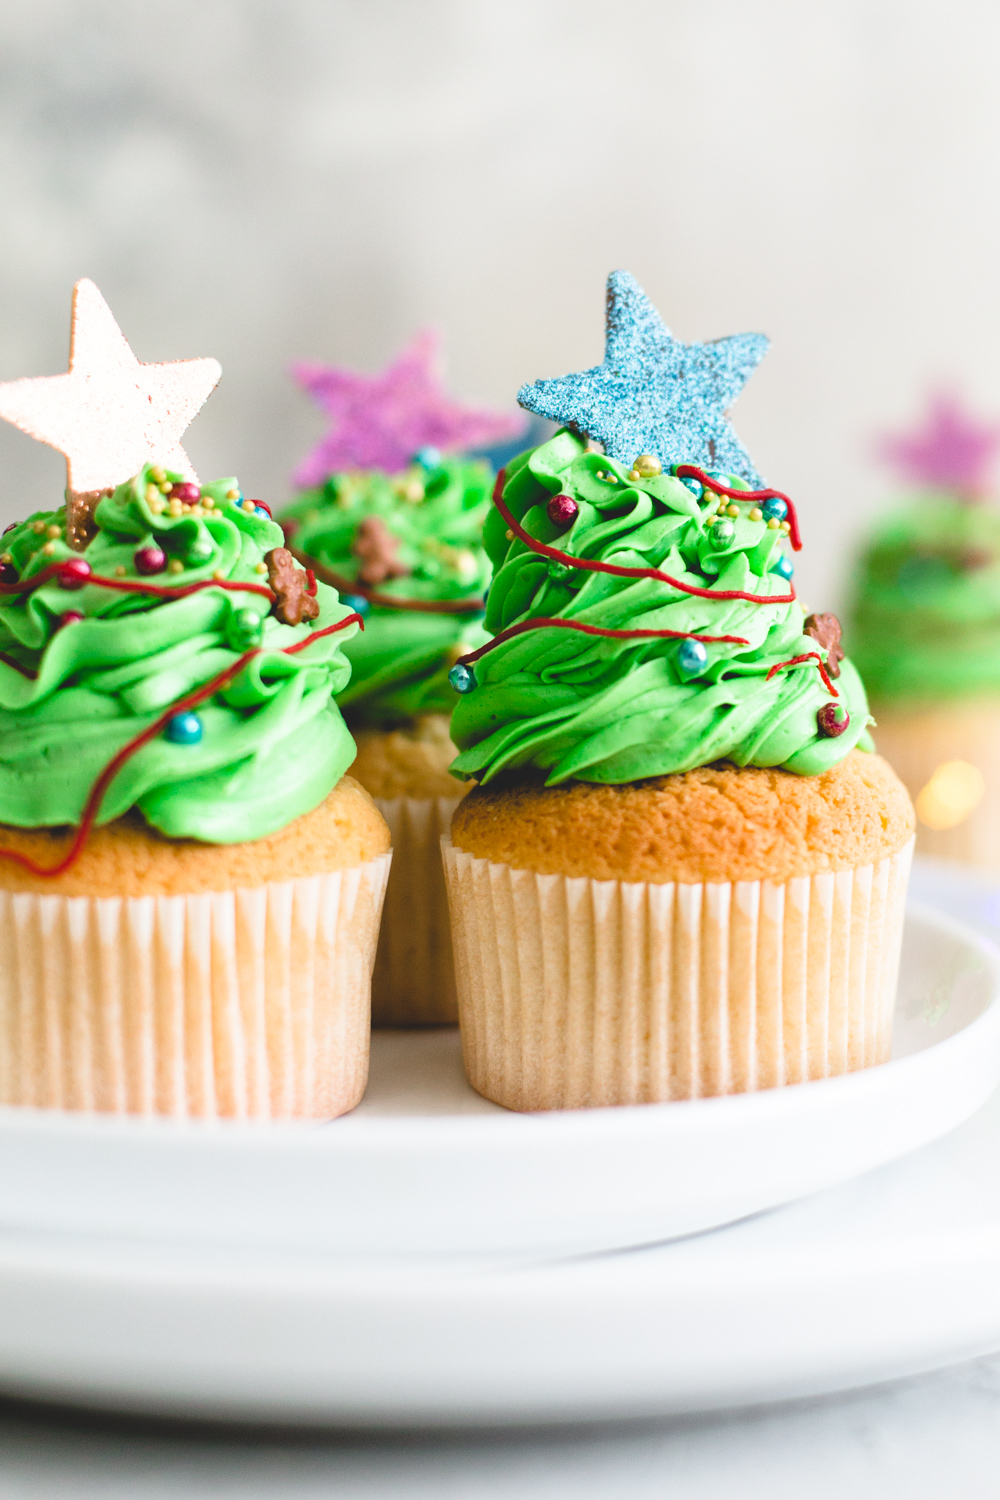 Tender and delicious Vegan Vanilla Cupcakes that everyone will love. Iced with Vanilla Buttercream Frosting and perfect for birthdays. #vegan #cupcakes #dessert #cake #vegancupcakes #vanilla #christmas #xmas #holidays #baking #veganbaking